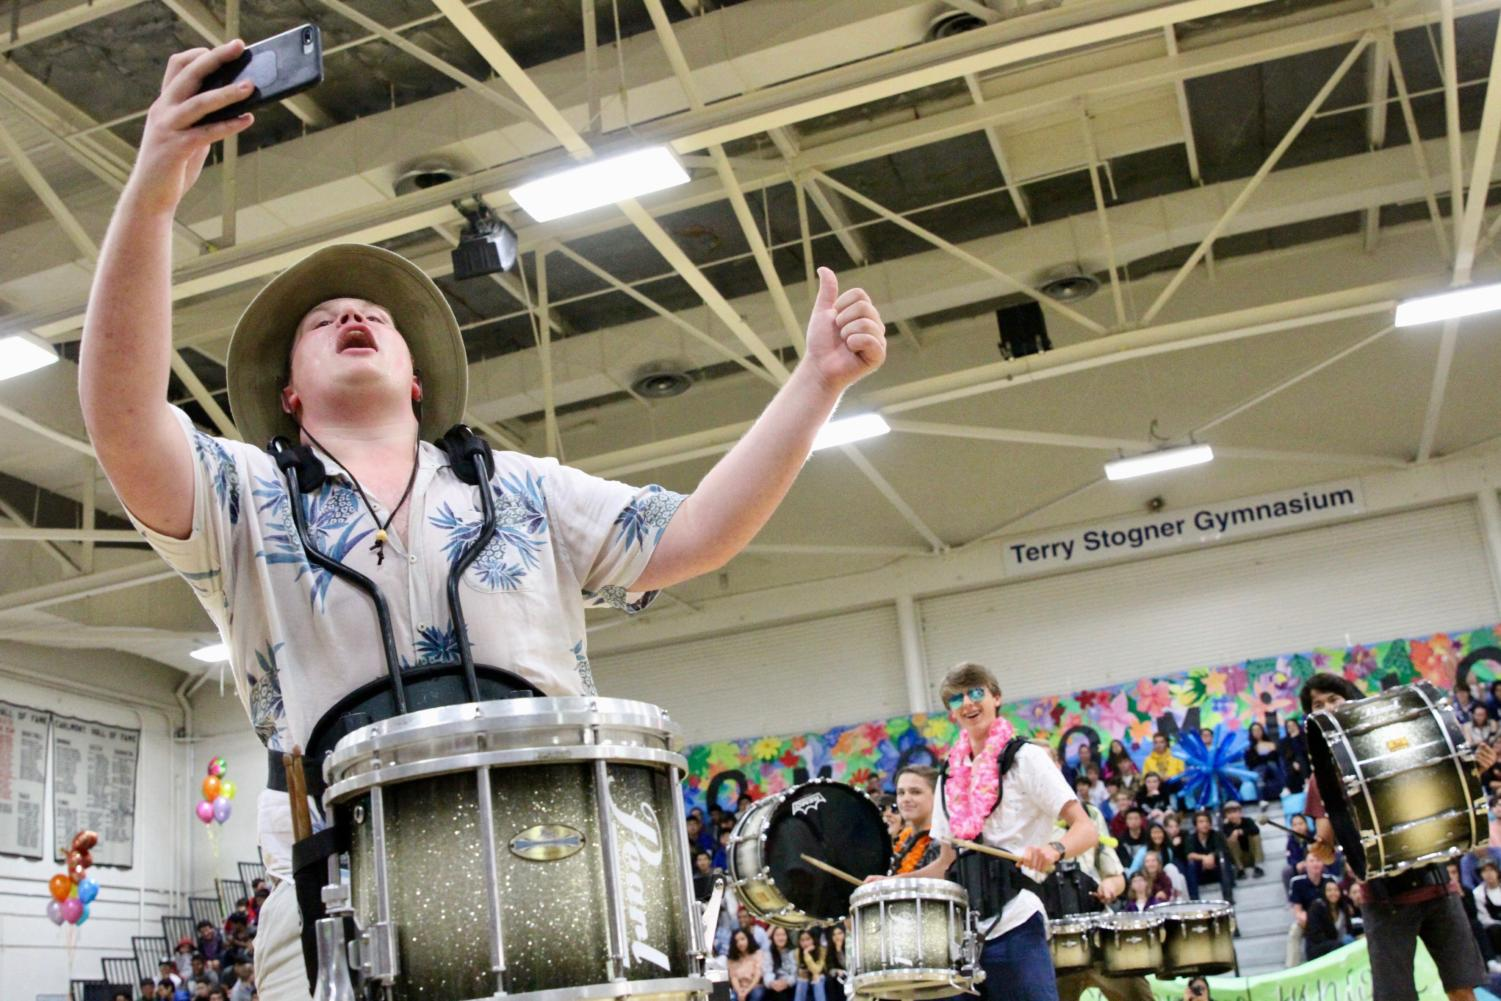 Drumline's captain, William Yonts, a senior, poses for a selfie with his ensemble during the Homecoming assembly on Oct. 25.